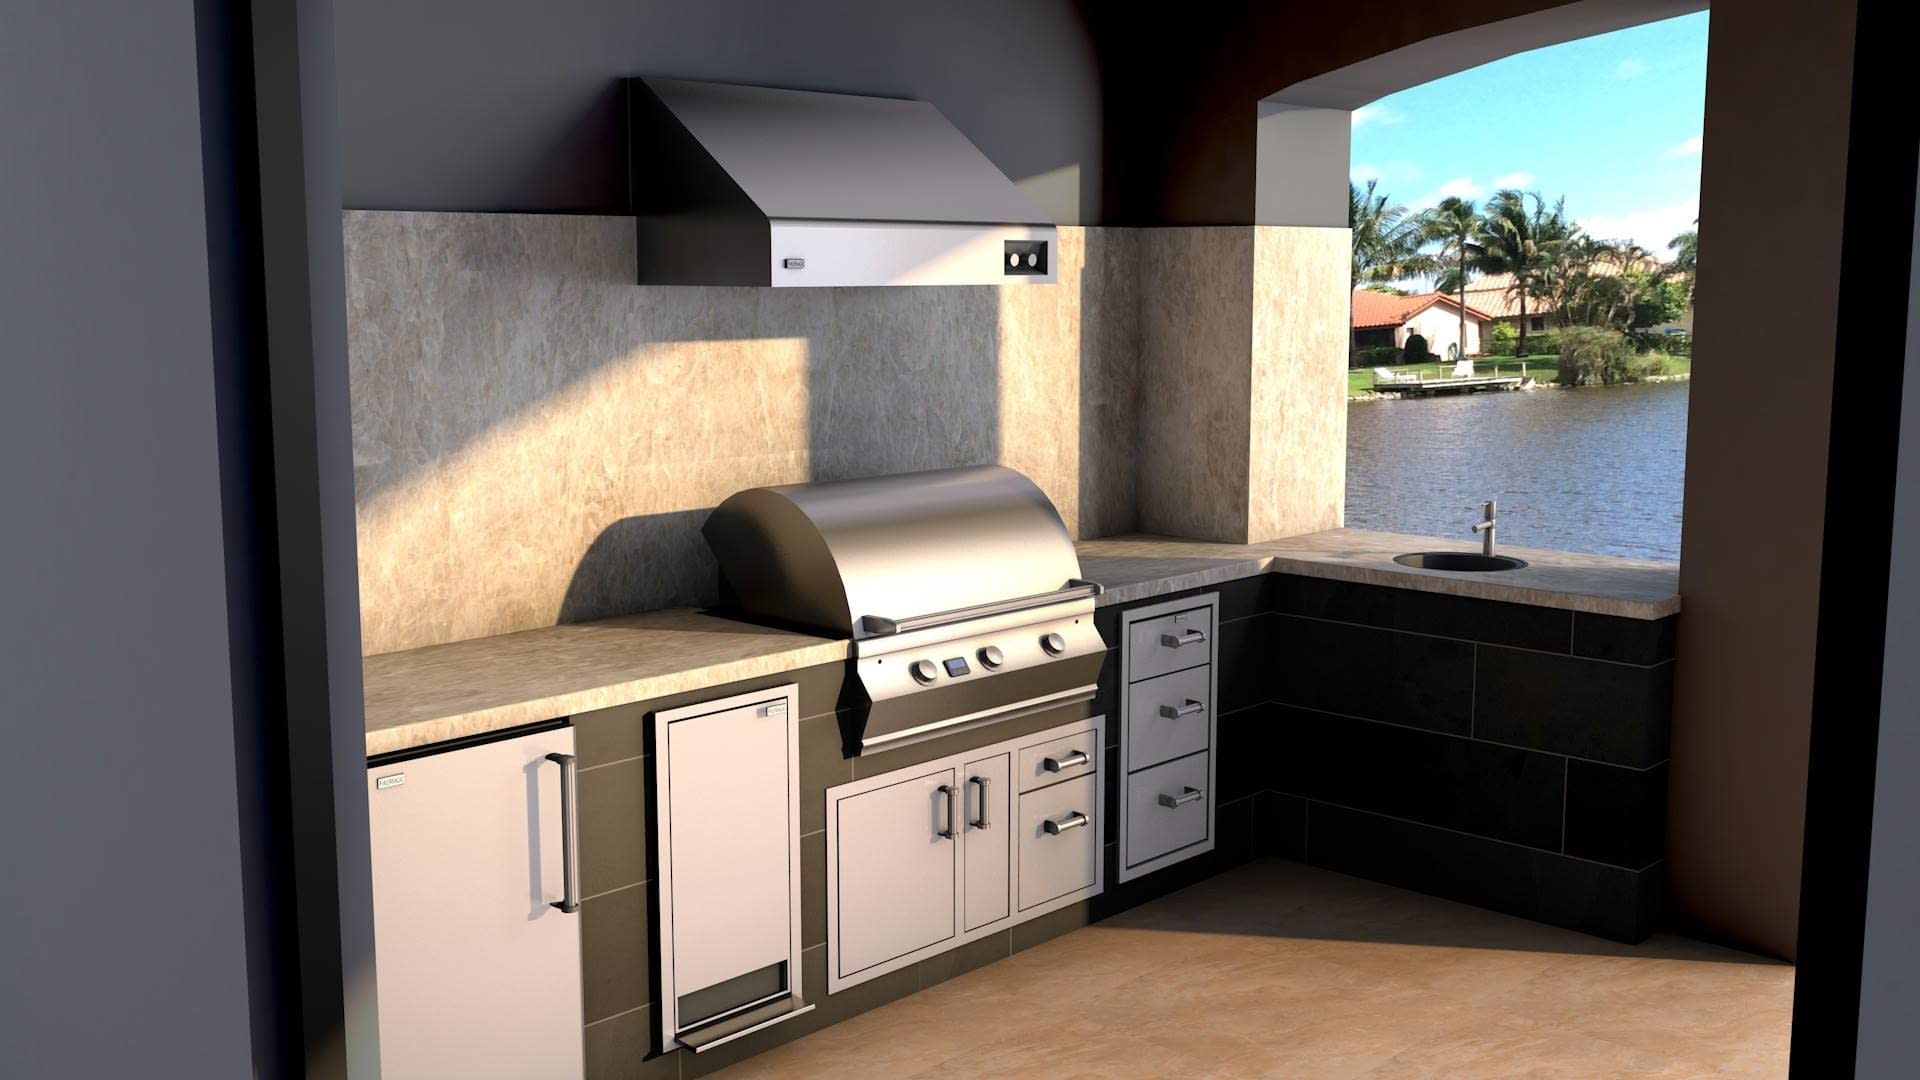 Get Our Best Ideas For Outdoor Kitchens